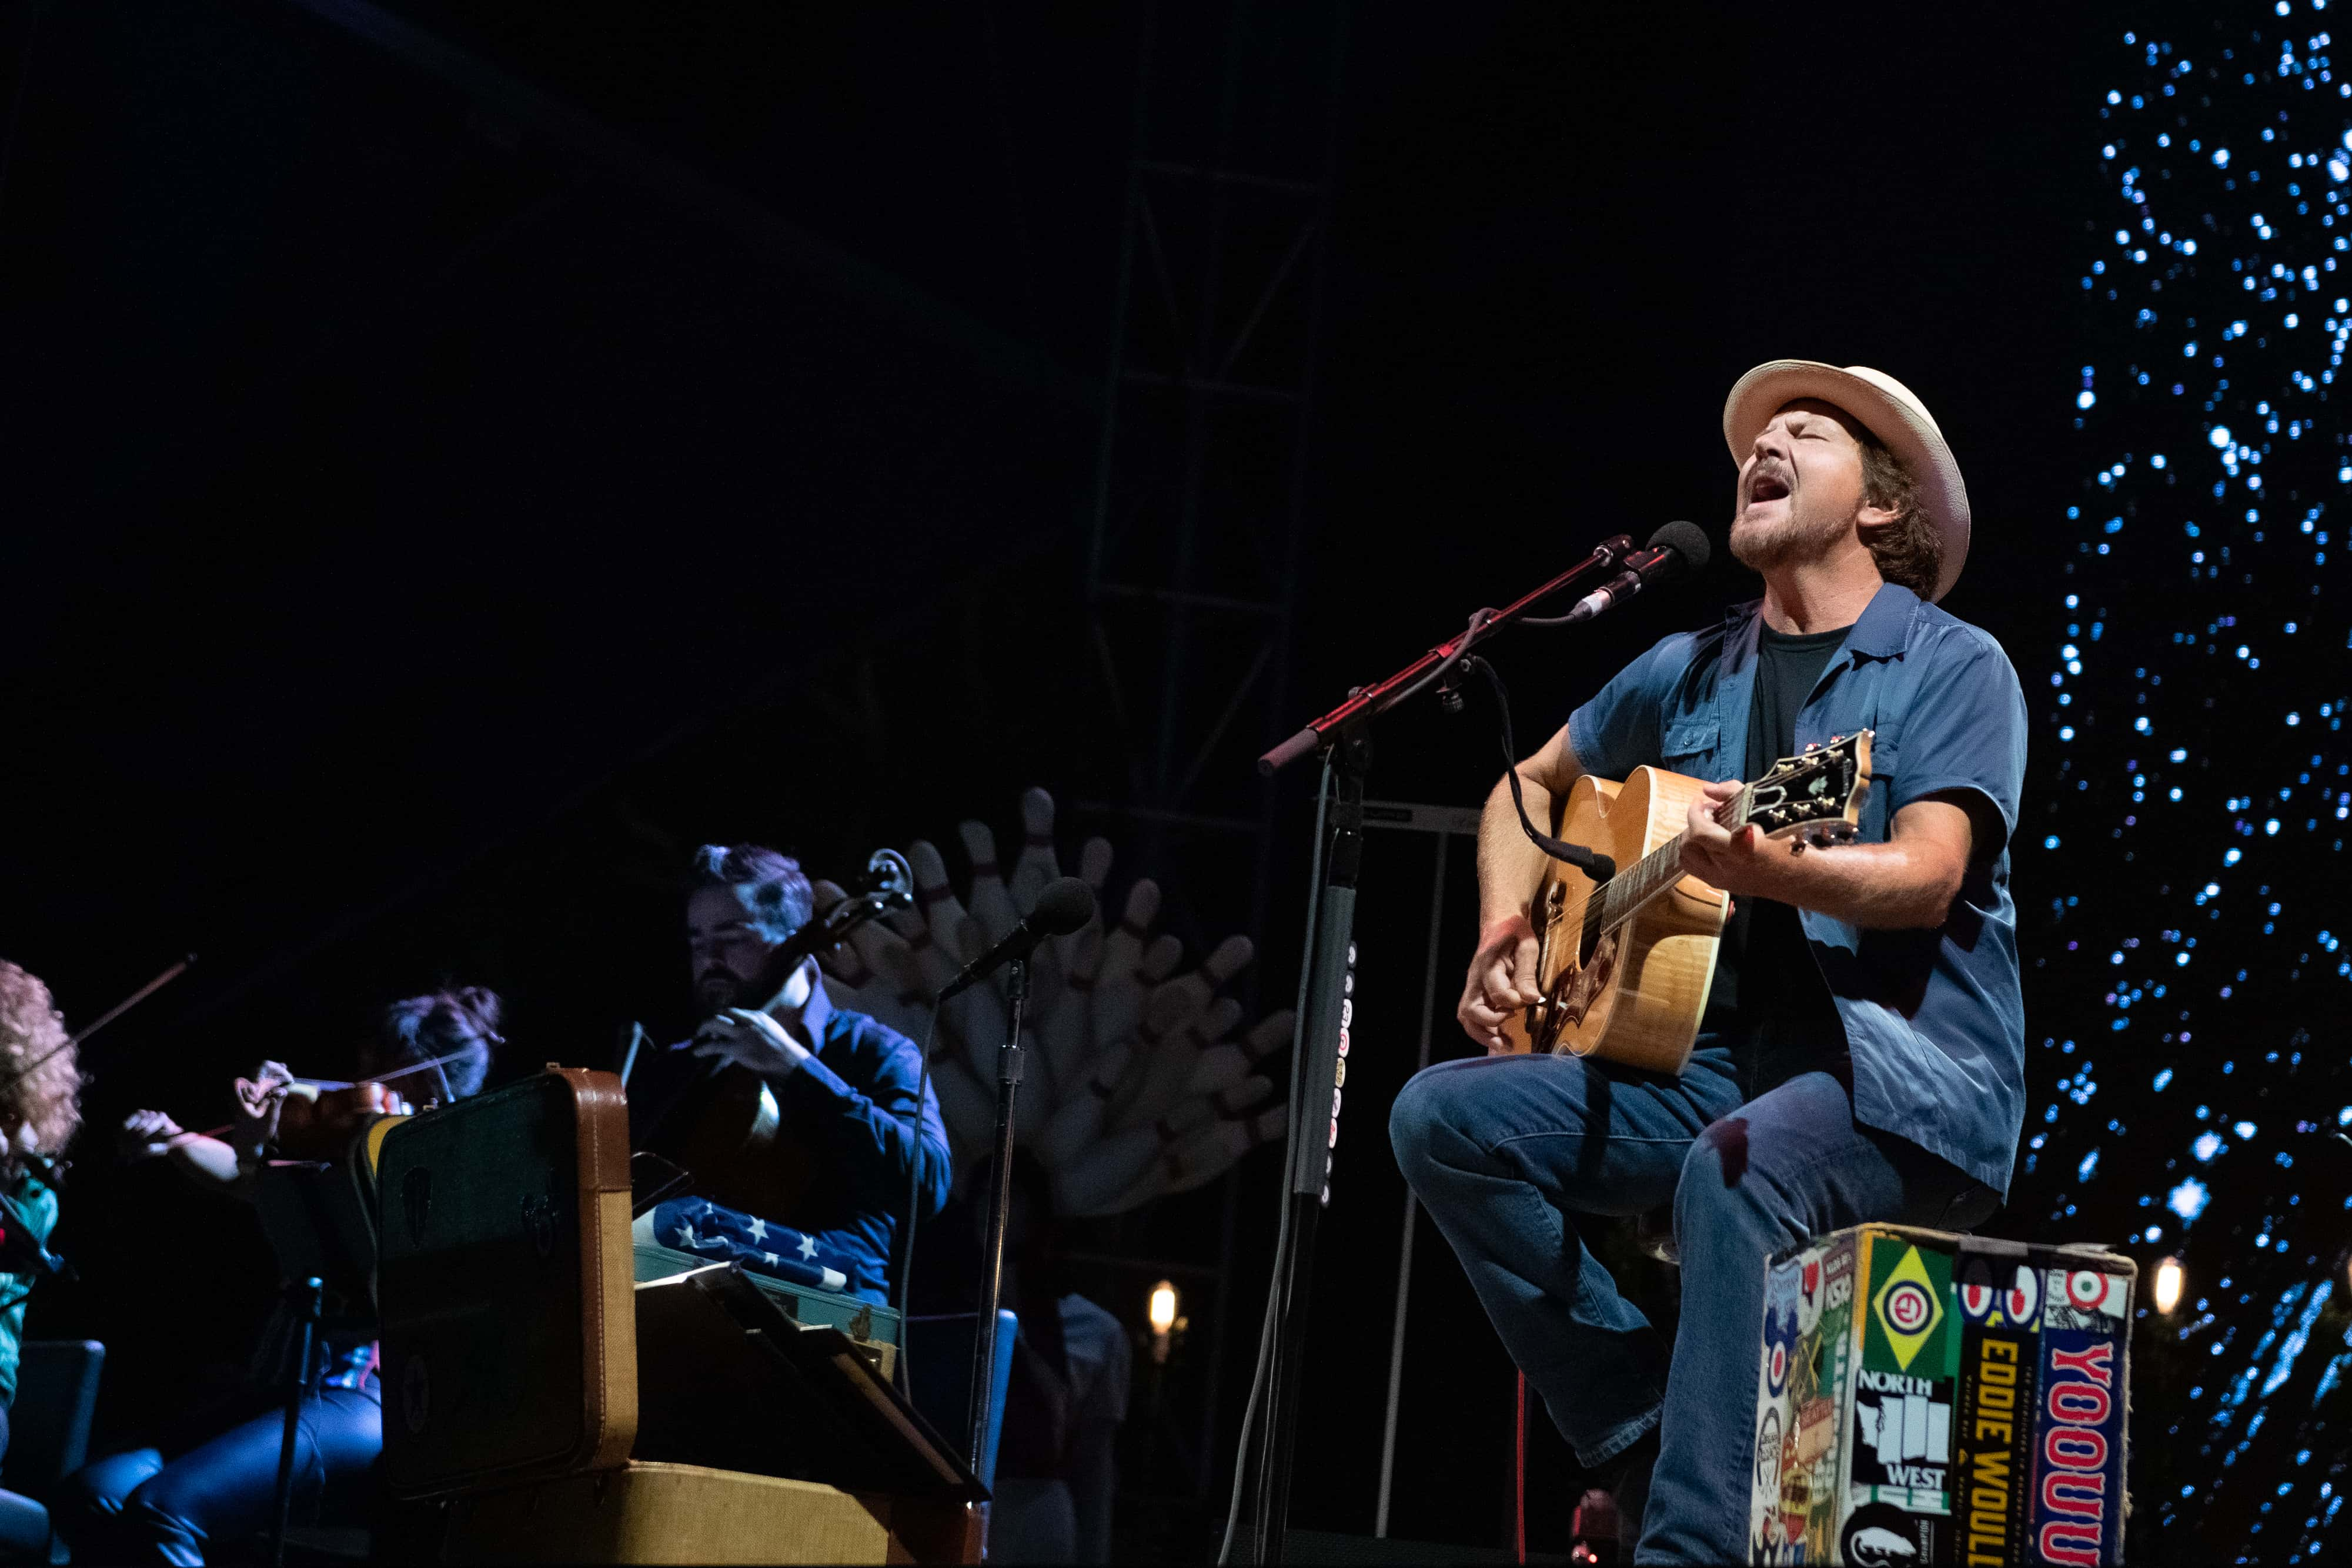 Singer/songwriter and guitarist Eddie Vedder performs live on stage during Ohana Festival at Doheny State Beach on September 28, 2019 in Dana Point, California.